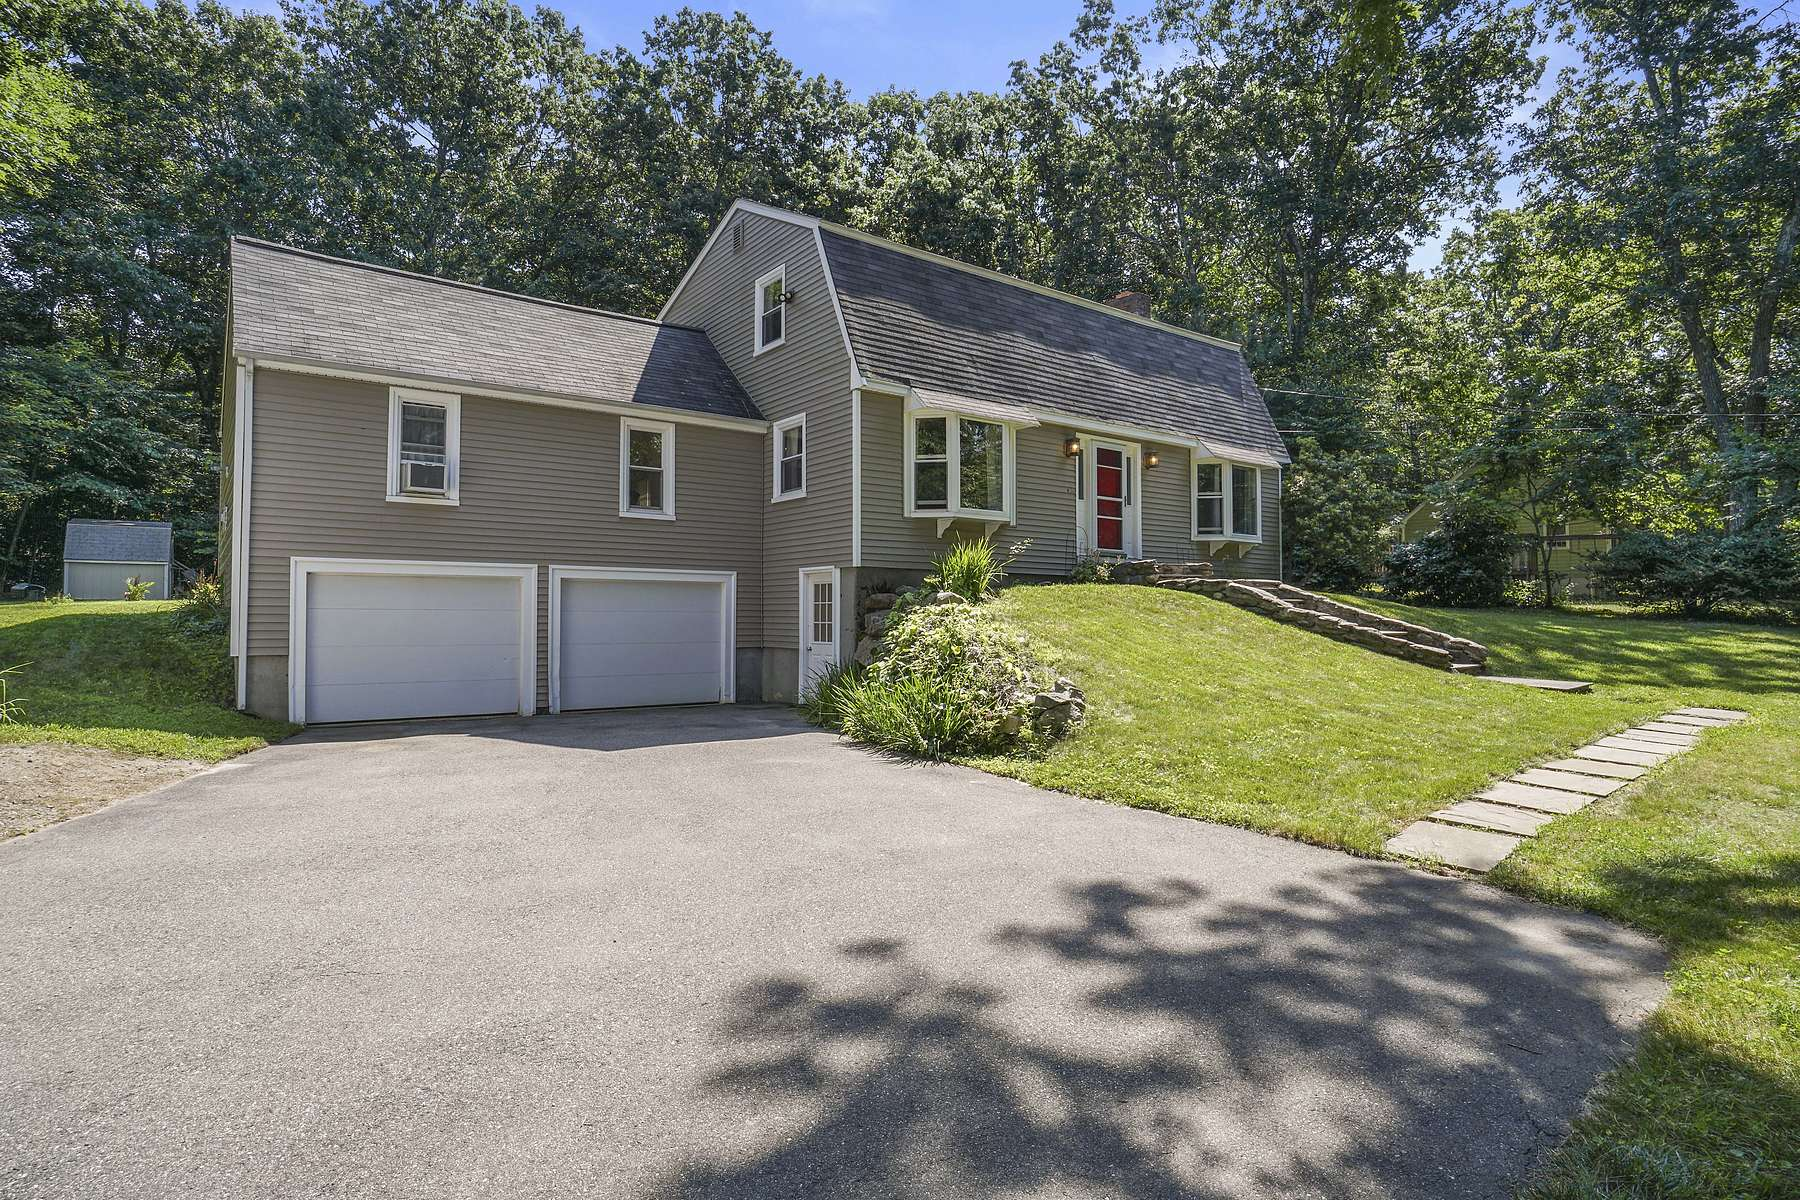 Single Family Homes for Sale at Gambrel Style Colonial 71 Thomas St Ashland, Massachusetts 01721 United States